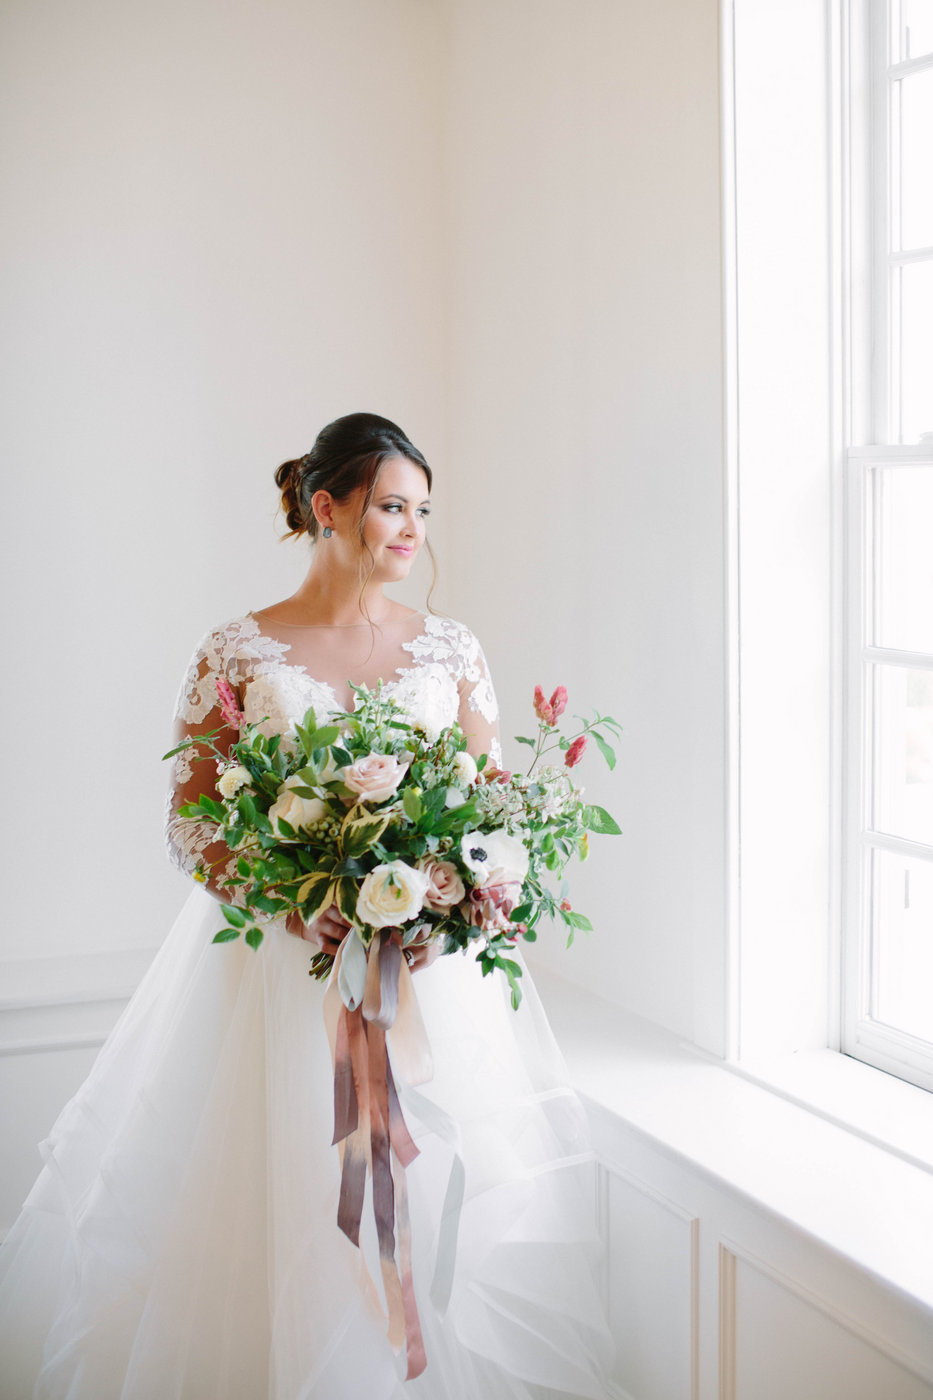 Brittany Bishop Photography White Room Styled Shoot July 17-SUBMIT hig-0026 (2)